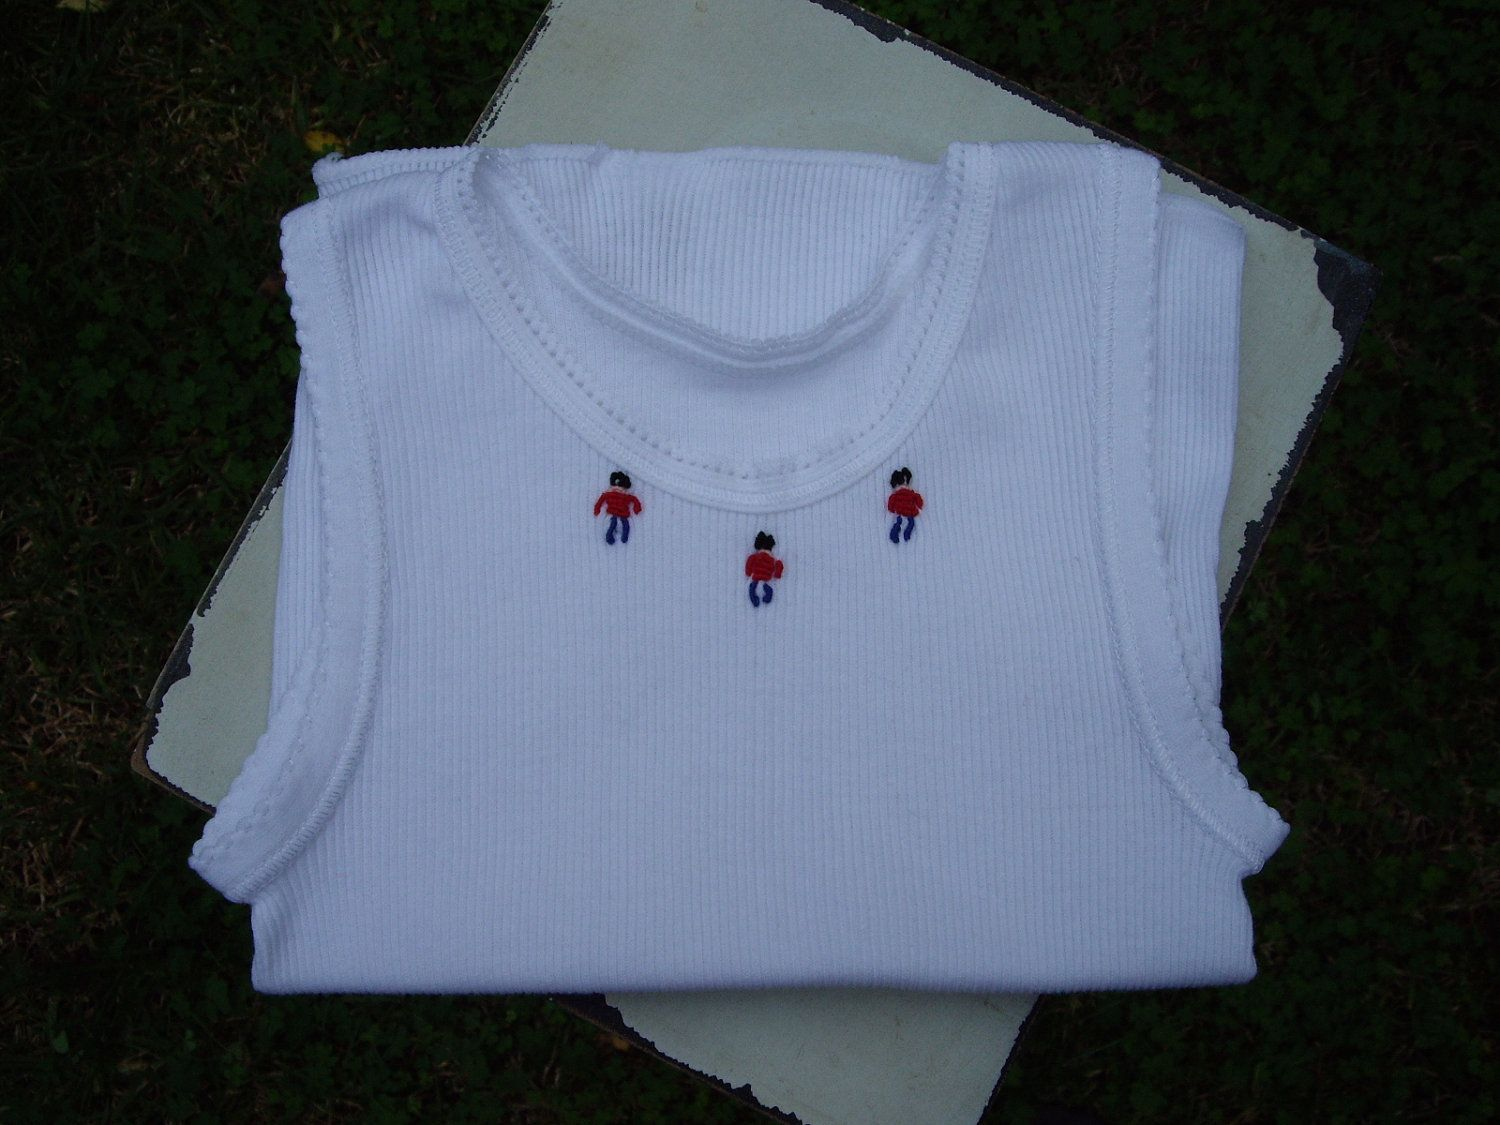 Cute hand embroidered baby singlets toy soldiers 1300 via cute hand embroidered baby singlets toy soldiers 1300 via etsy negle Images